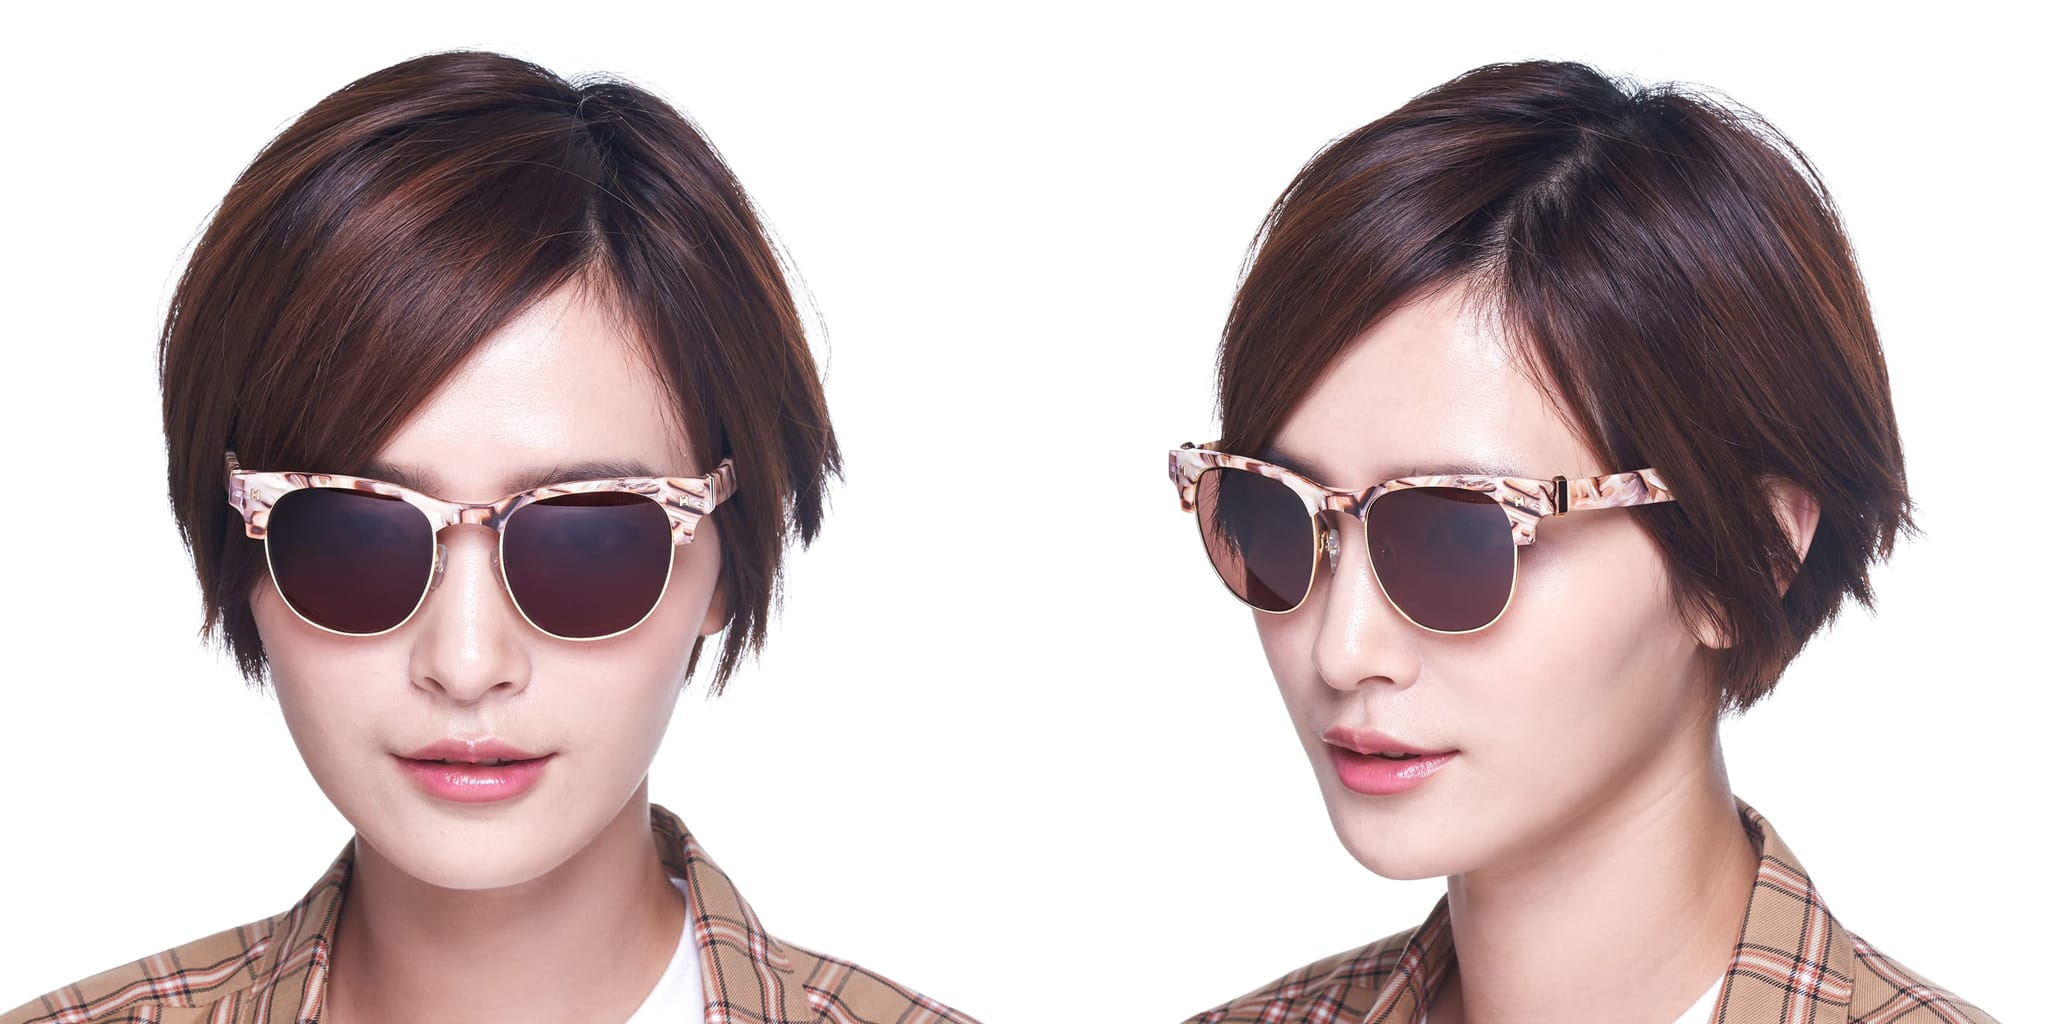 HEX-Eyewear-sunglasses-handmade-Italy-glasses-墨鏡-太陽眼鏡